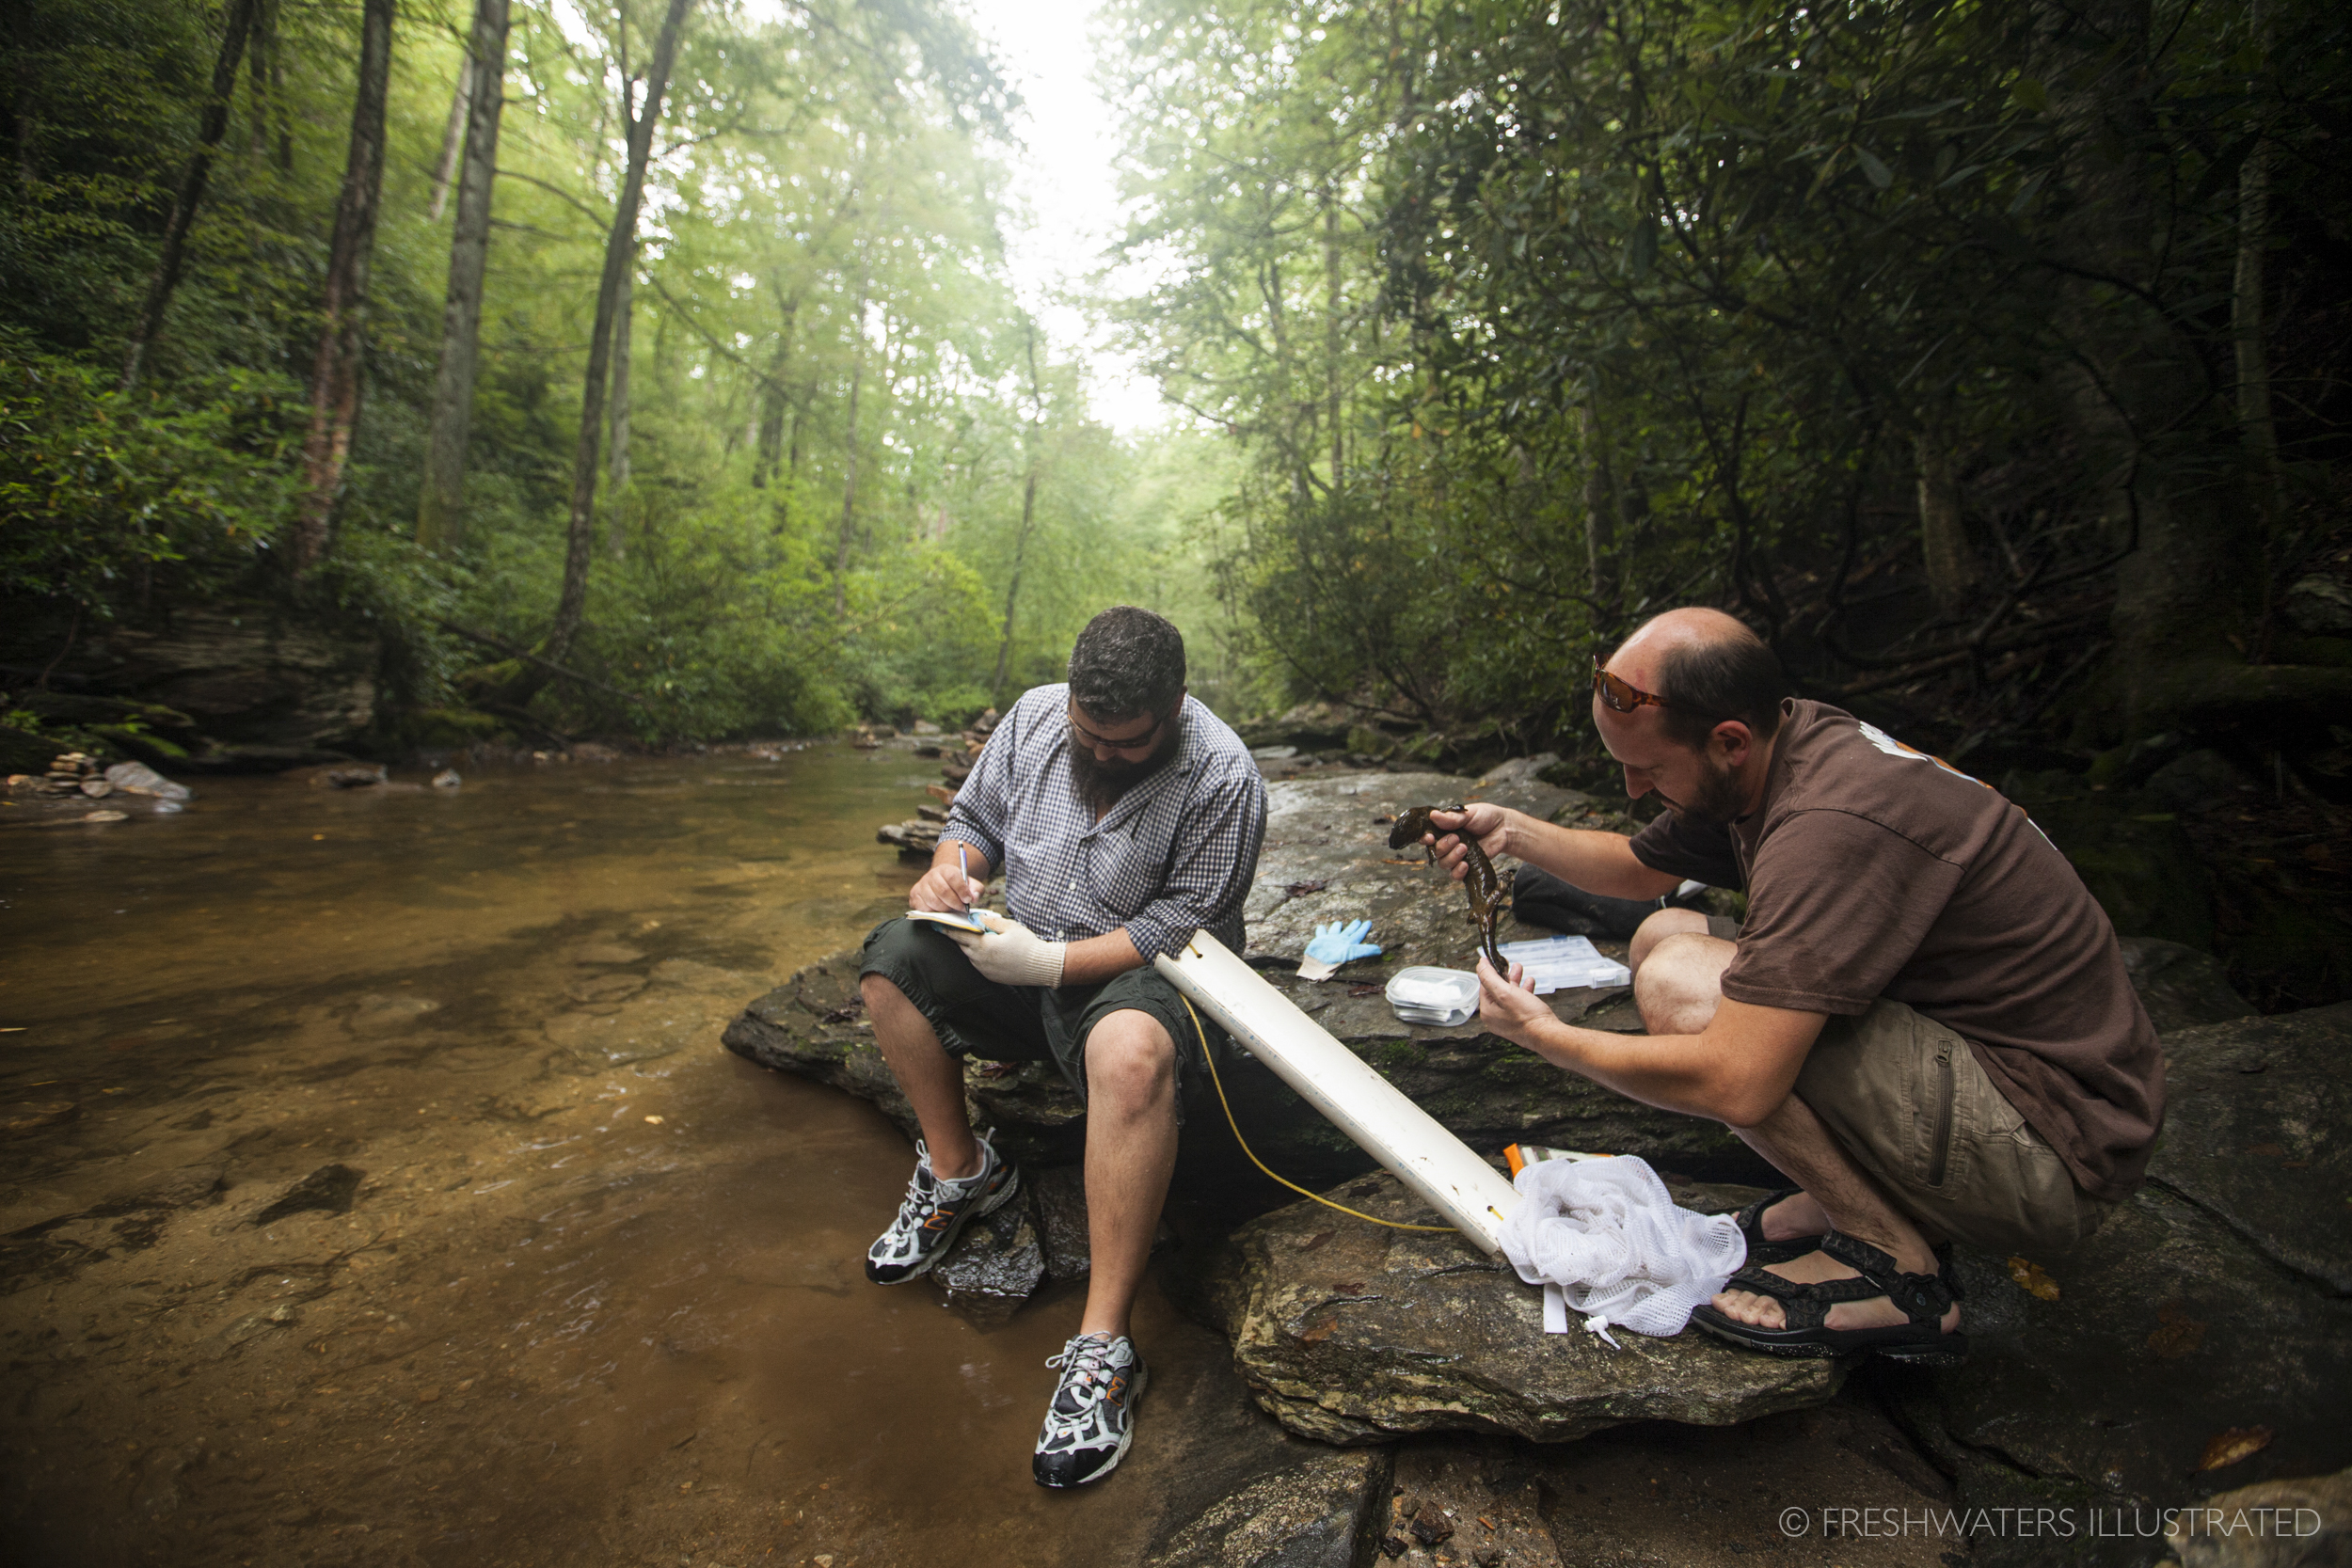 Biologists Jeff Humphries and Mike Sisson record and measure information on an Eastern Hellbender (Cryptobranchus alleganiensis) in a Southern Appalachian stream. North Carolina  www.FreshwatersIllustrated.org